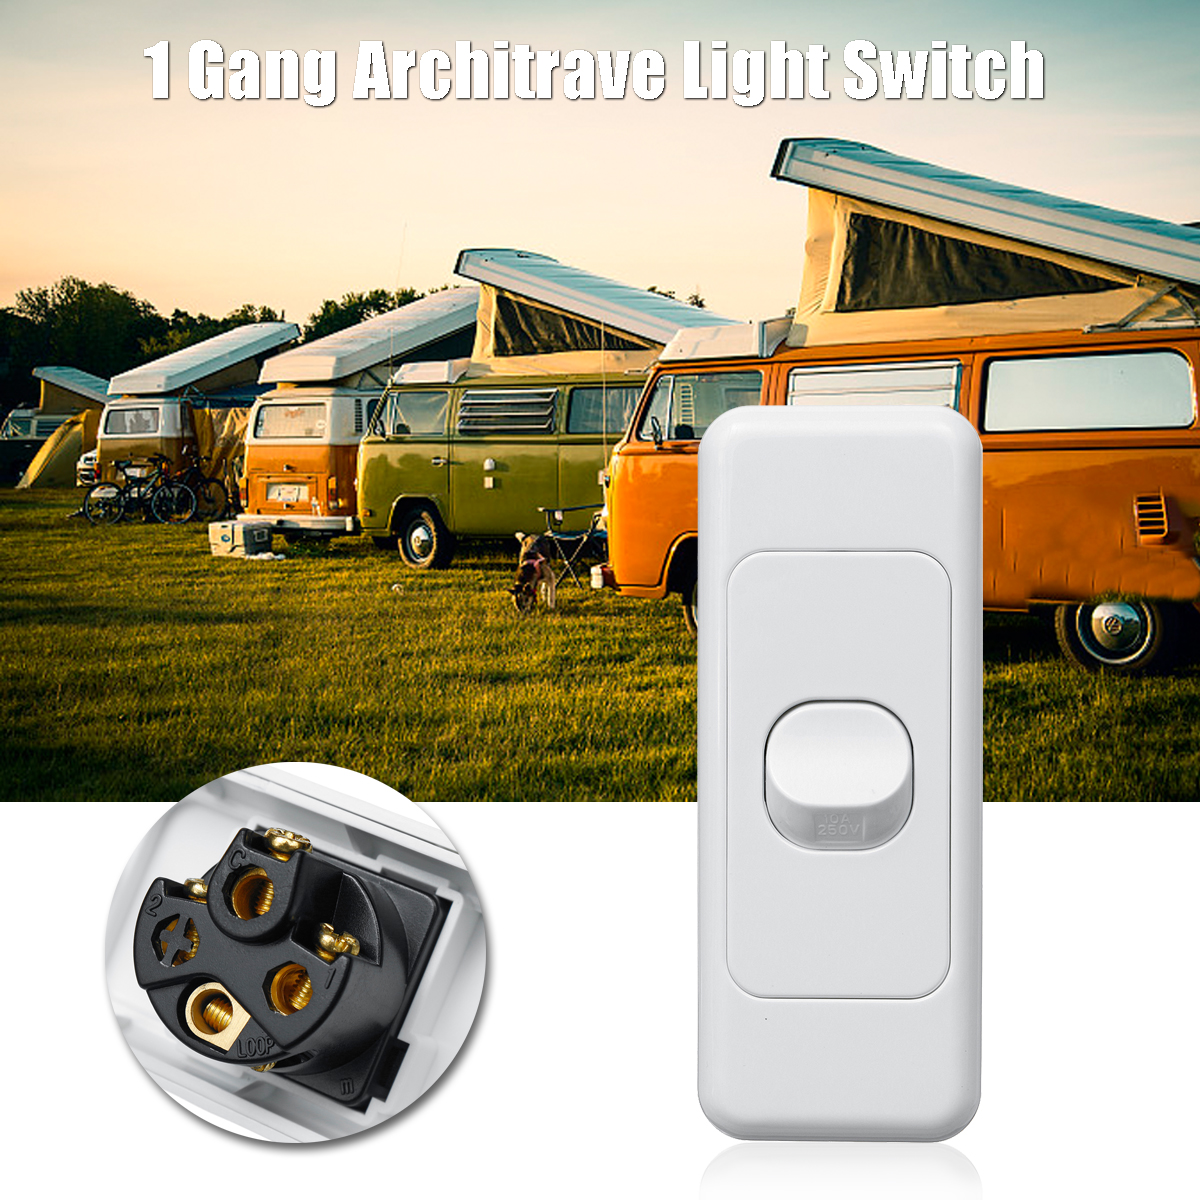 250V 10A 1 Gang Architrave Light Switch Rocker Switch Wafer Series Double Poles Switch